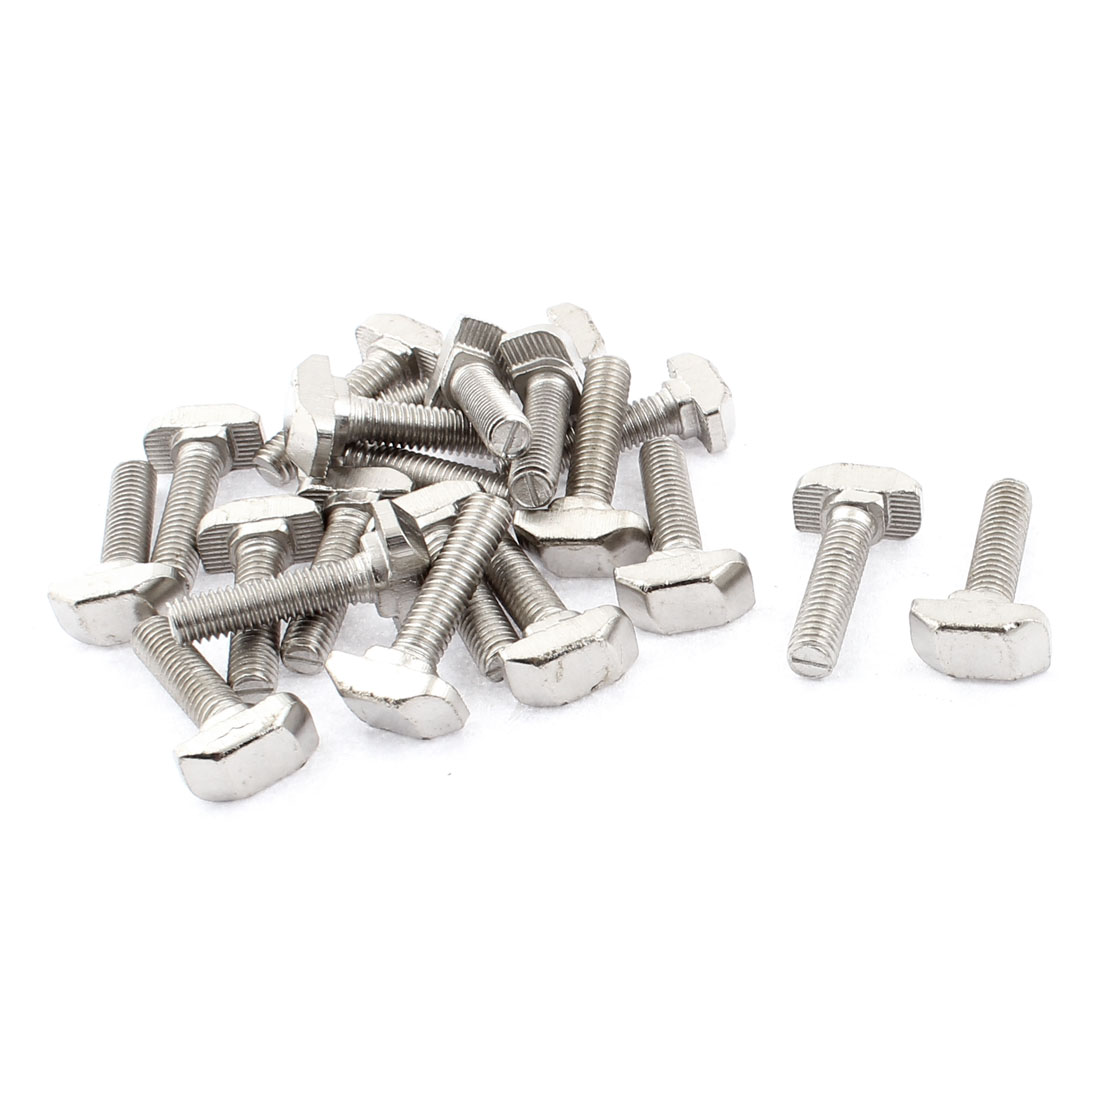 M6 x 25mm Metal T Slot Drop-in Stud Sliding Bolt Screw Silver Tone 20pcs